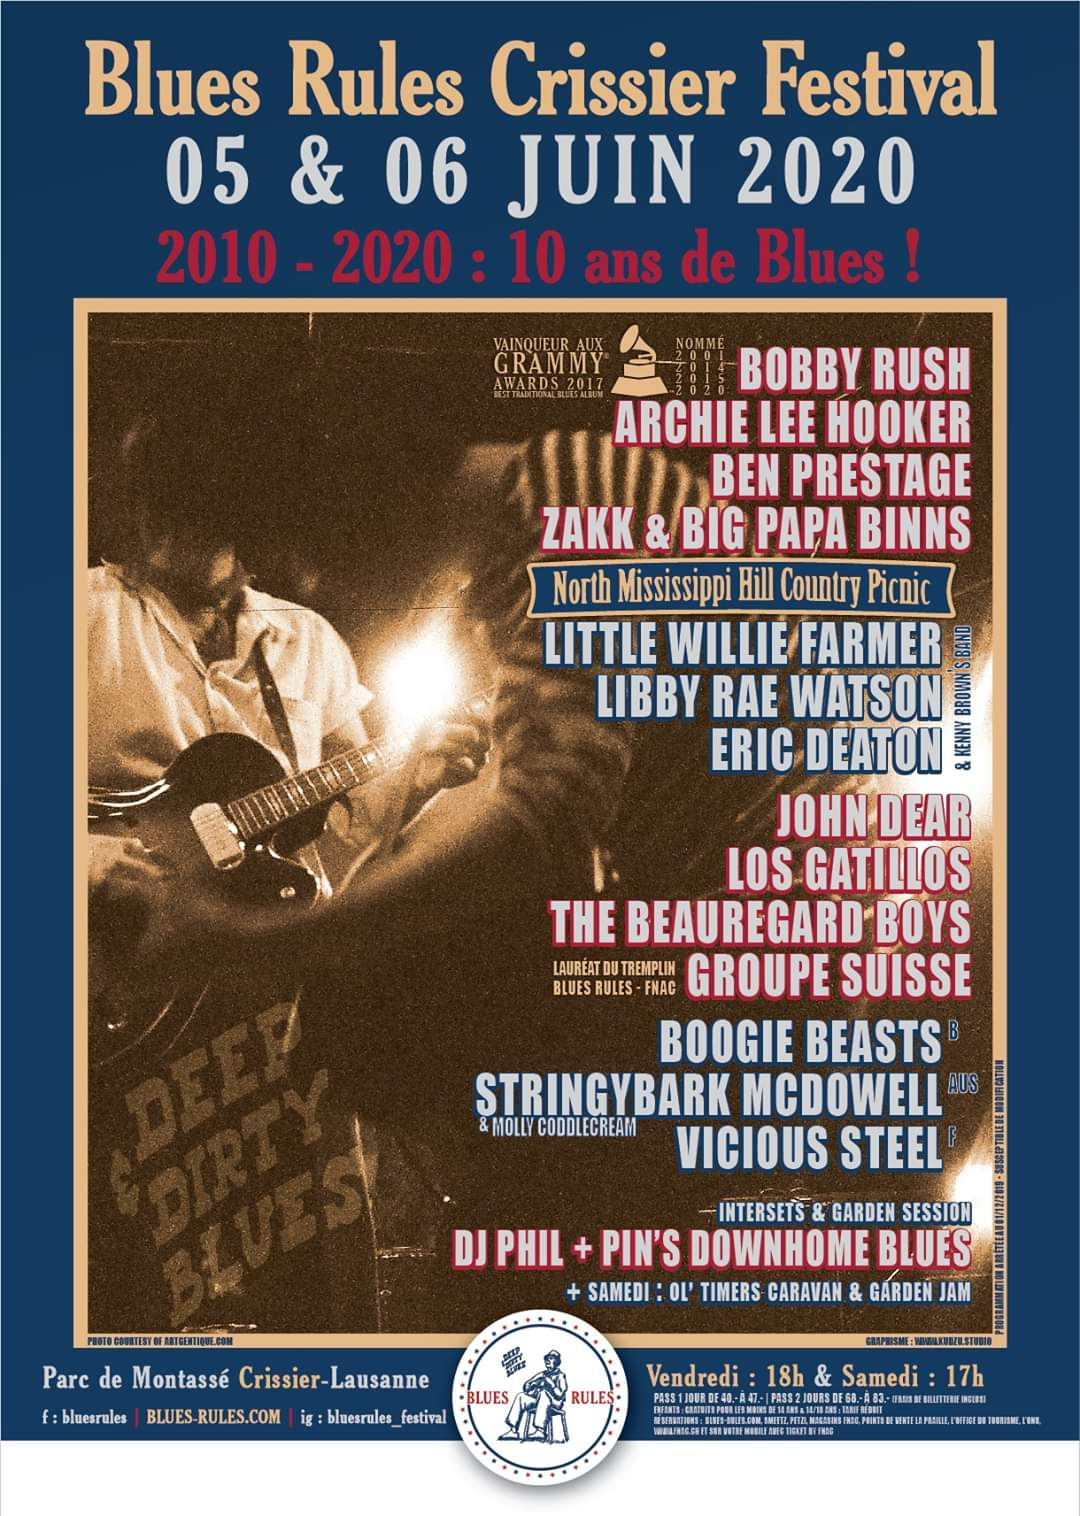 Affiche Blues Rules Crissier Festival 2020